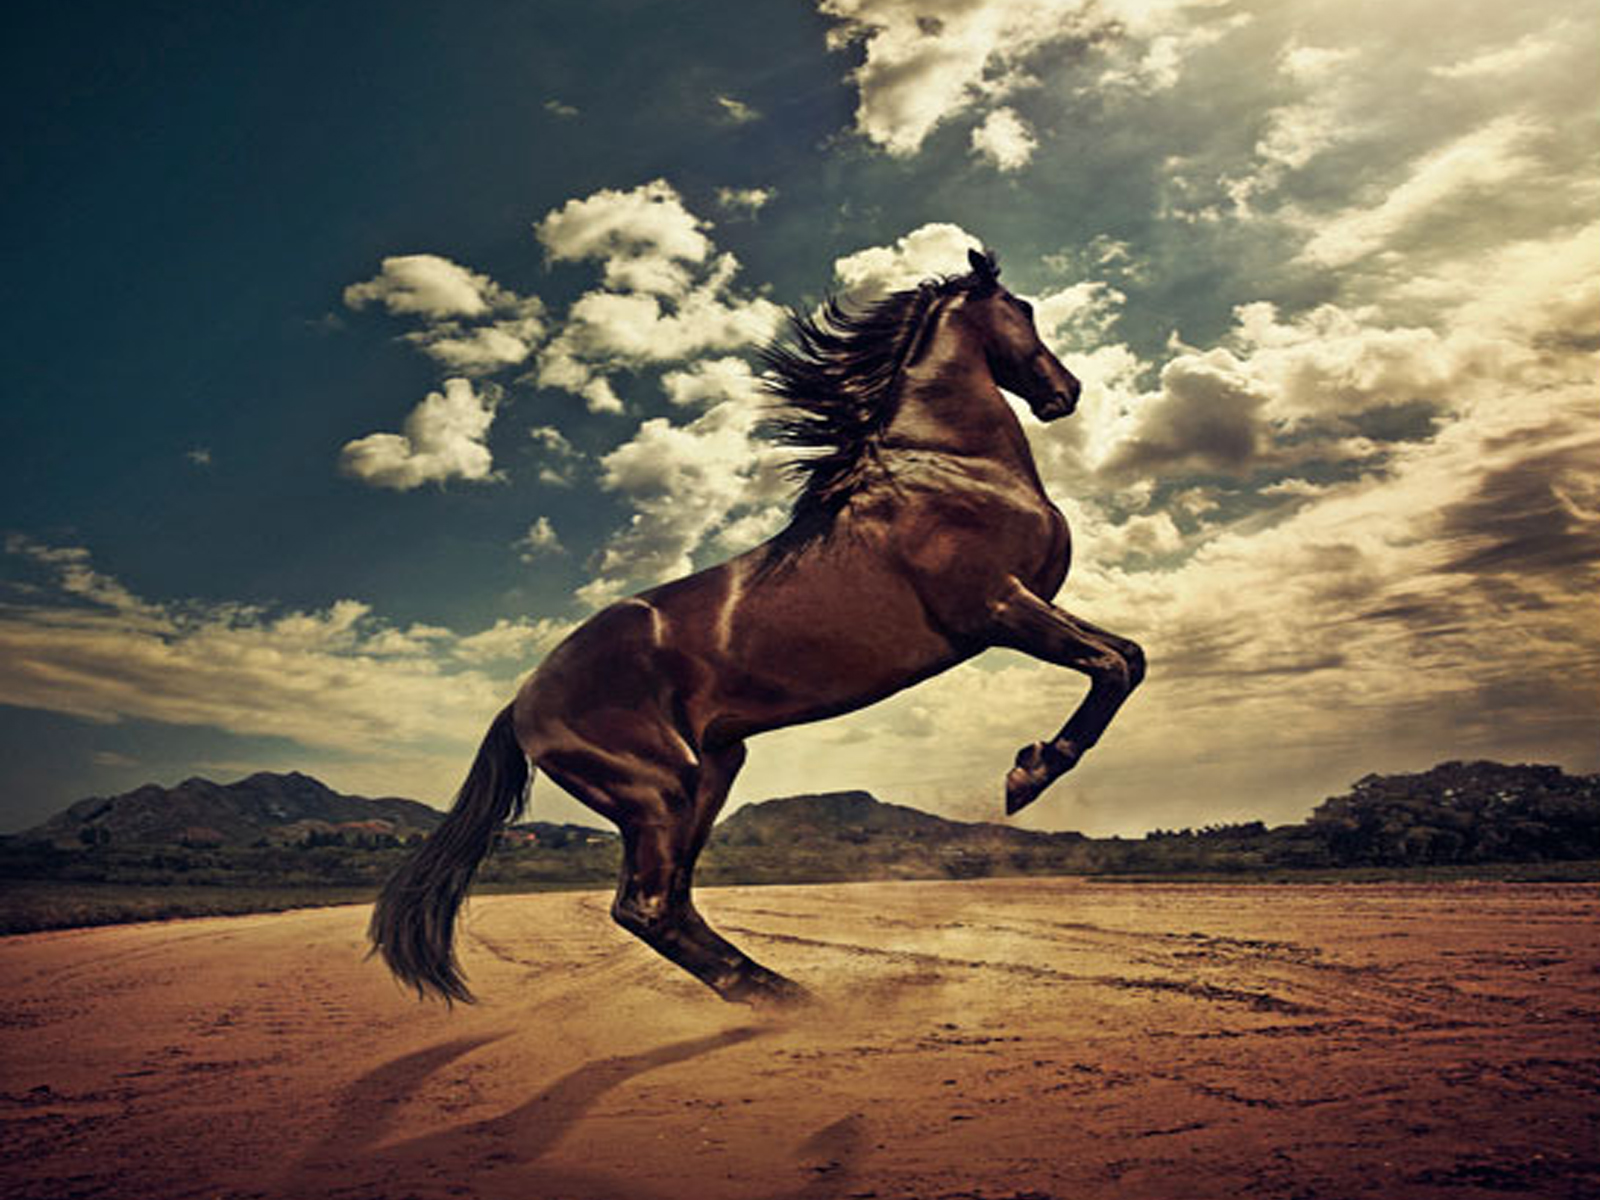 Must see Wallpaper Horse Desert - the-best-top-desktop-horse-wallpapers-25  Pic_879372.jpg